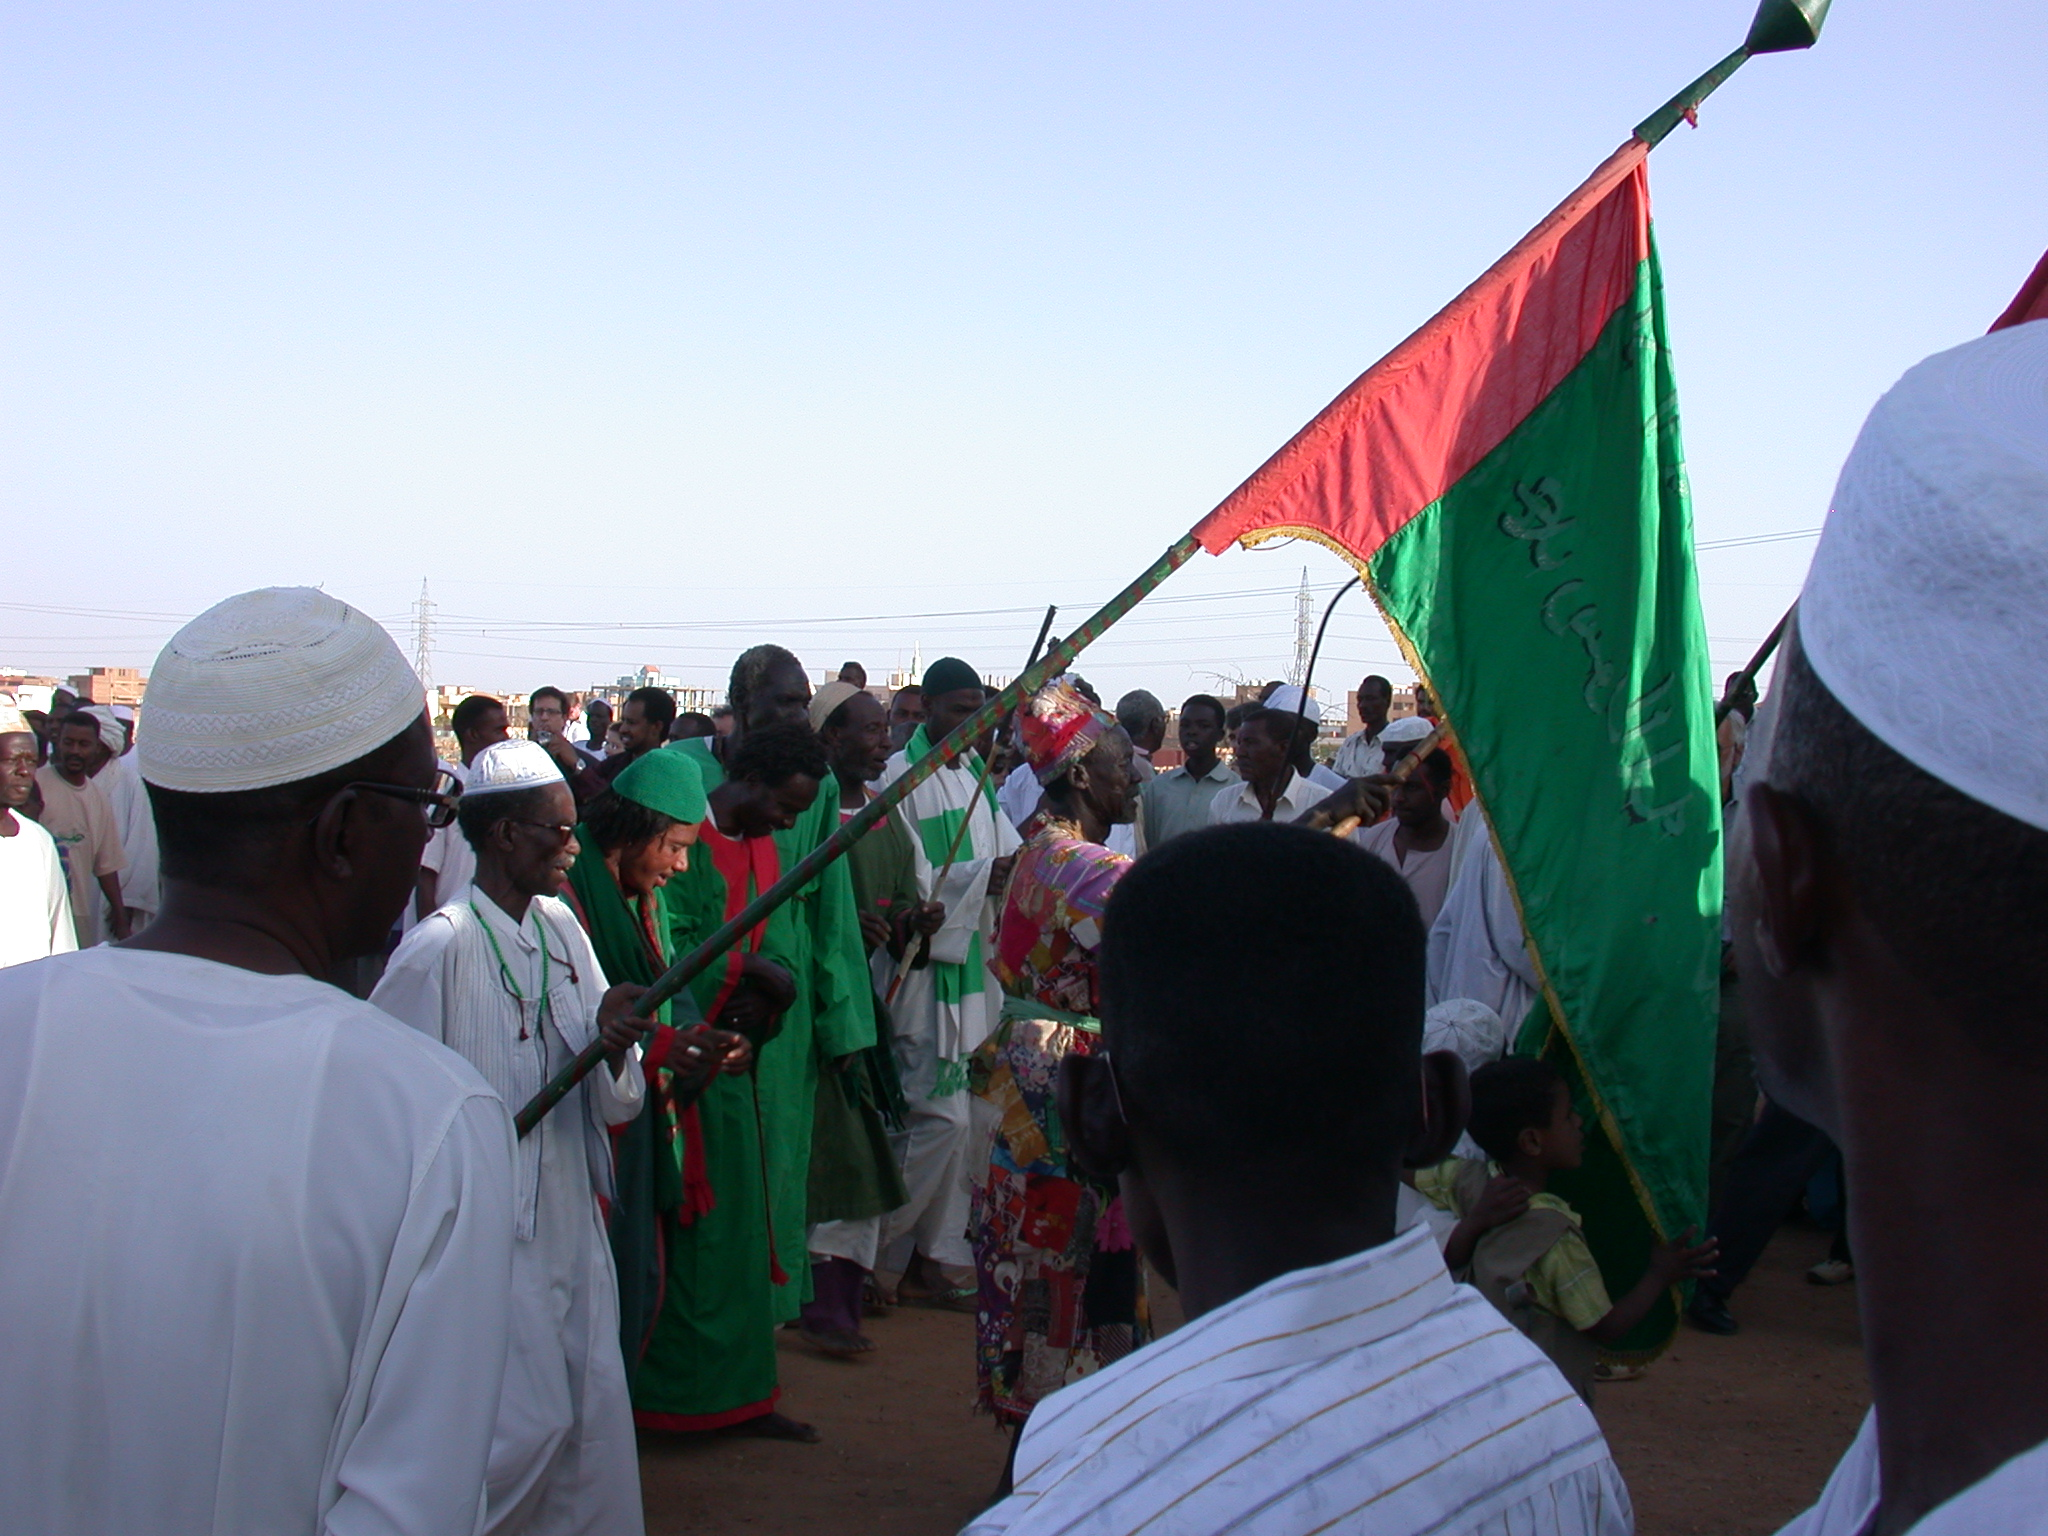 Procession Approaching Tomb at Sufi Dancing Site, Omdurman, Sudan